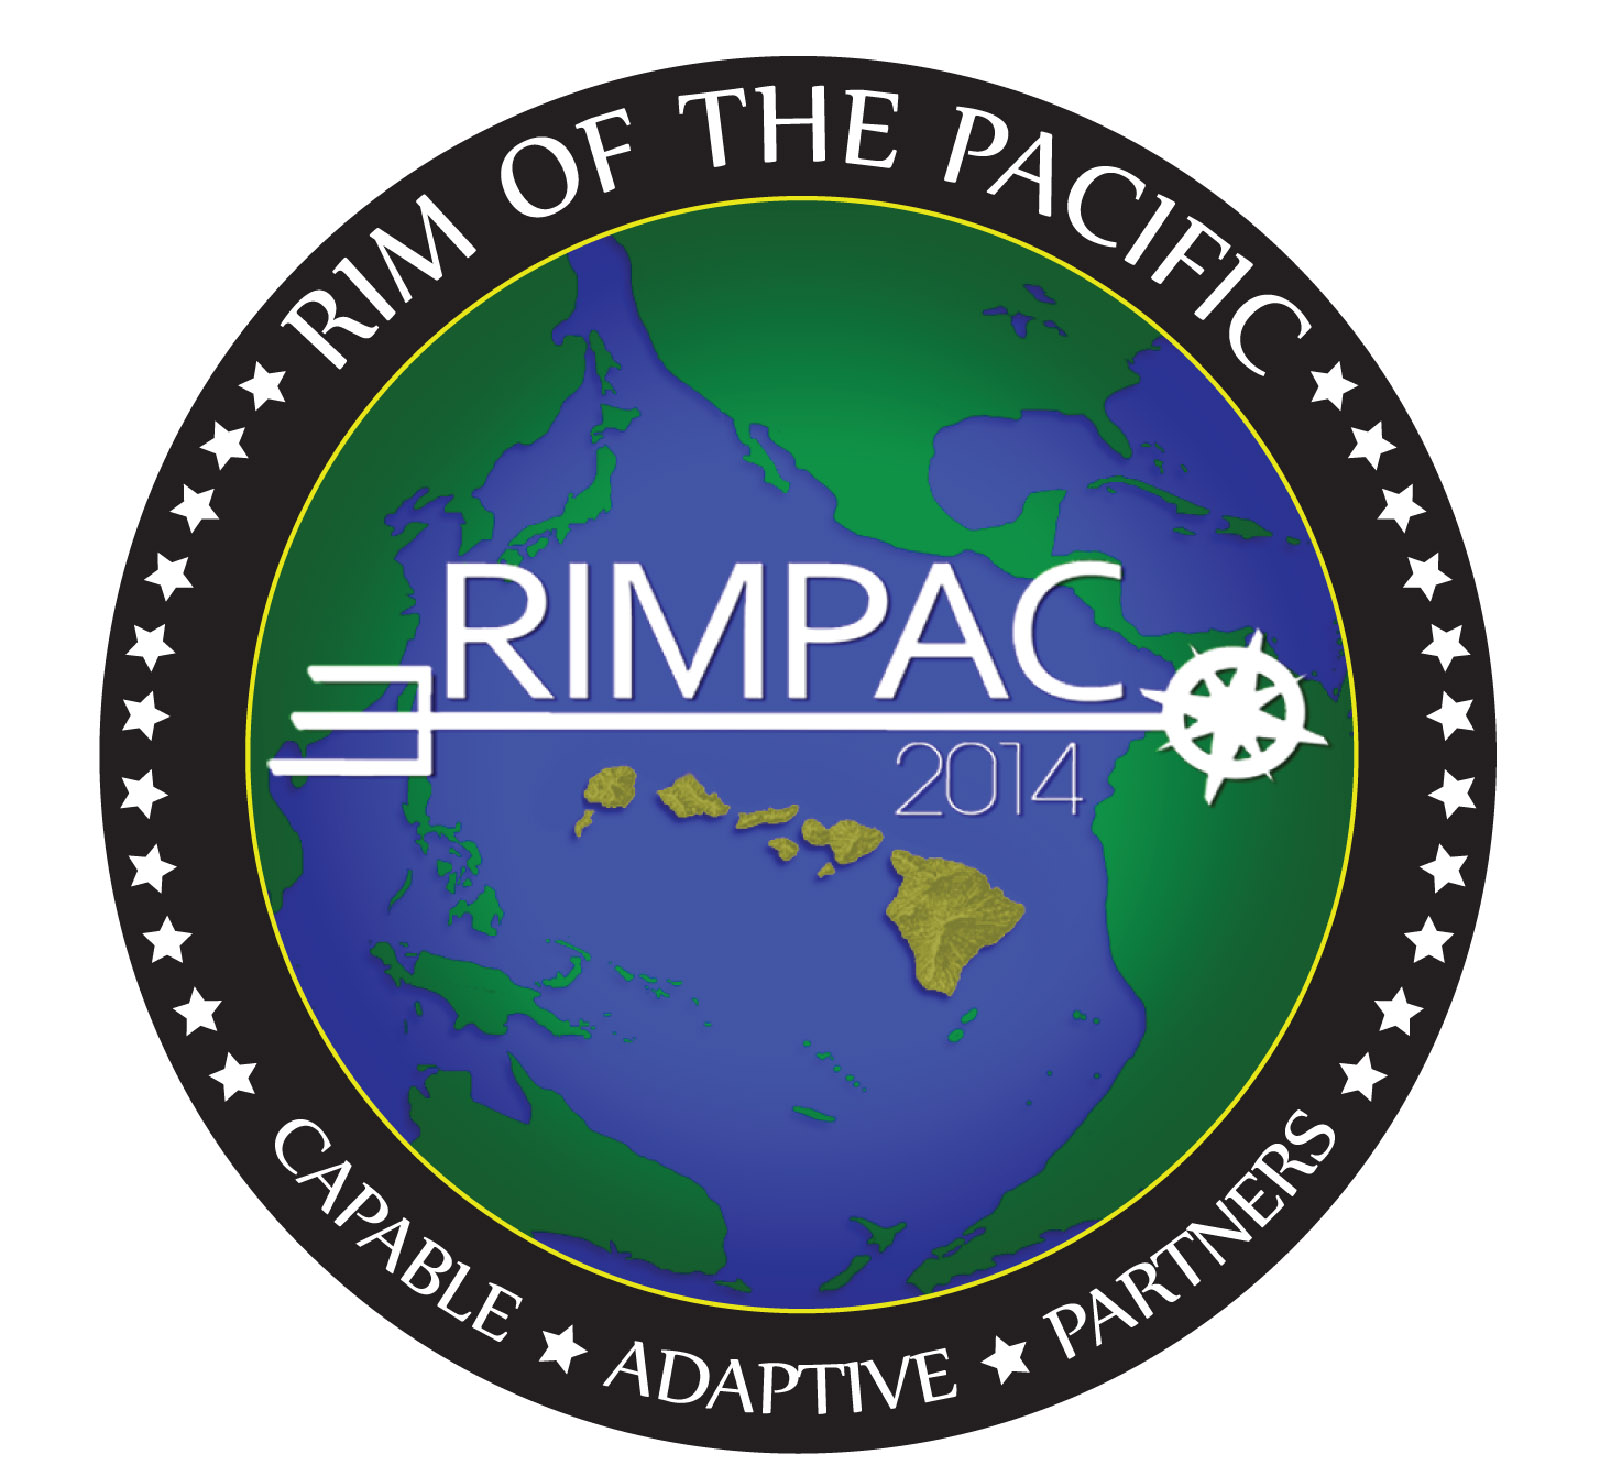 The RIMPAC logo used for the 2014 exercise.